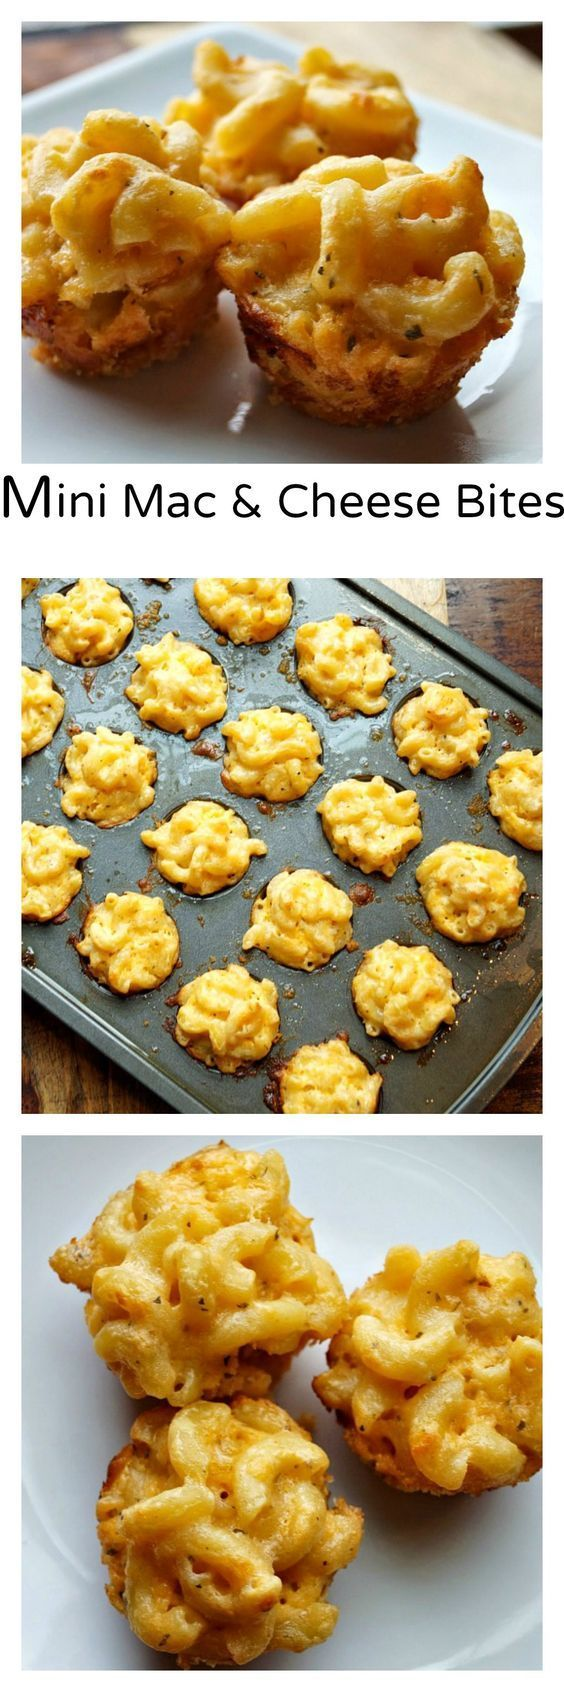 824 best party recipes images by catherine mccord on pinterest mini macaroni and cheese bites forumfinder Gallery